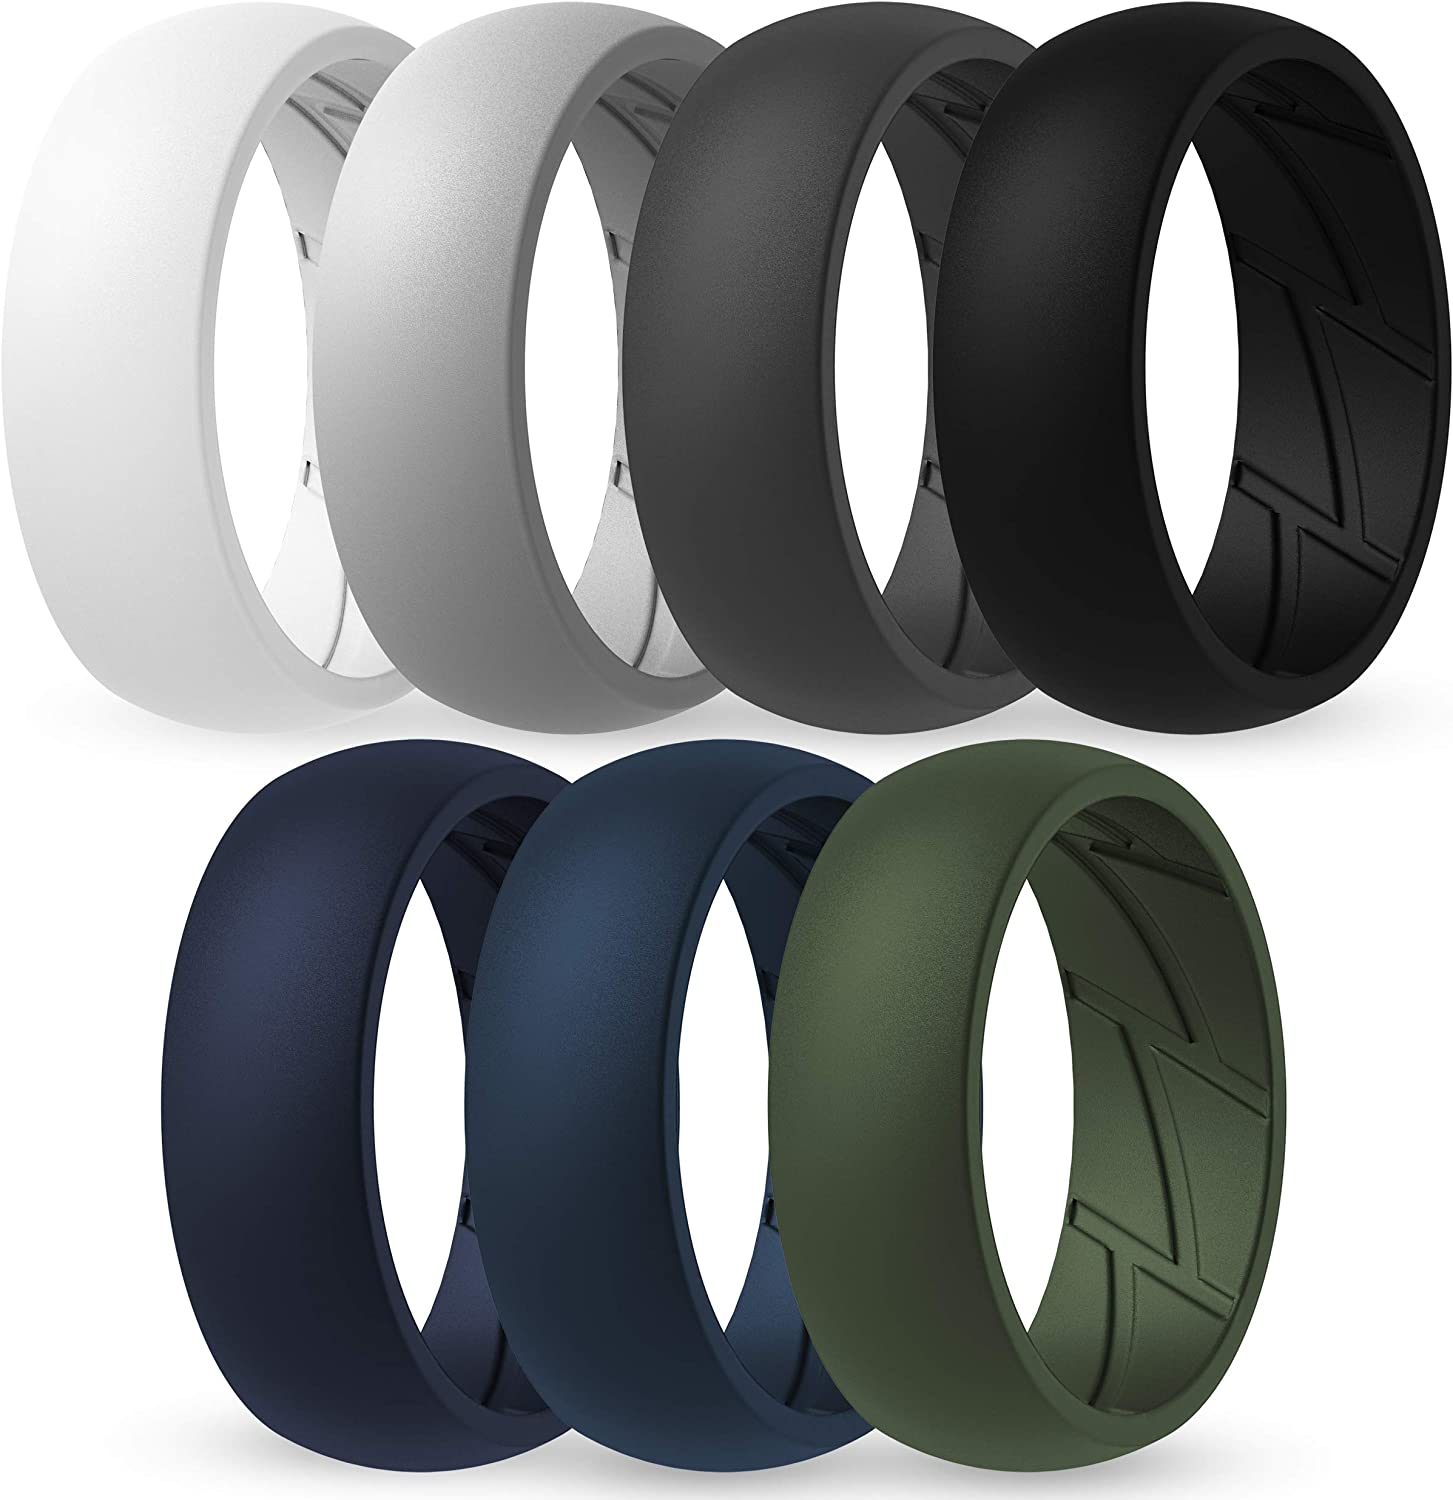 7 Rings // 4 Rings // 1 Ring Breathable Edition Rubber Engagement Bands 8.5mm Wide ThunderFit Silicone Wedding Rings for Men Breathable Airflow Inner Grooves 2.5mm Thick